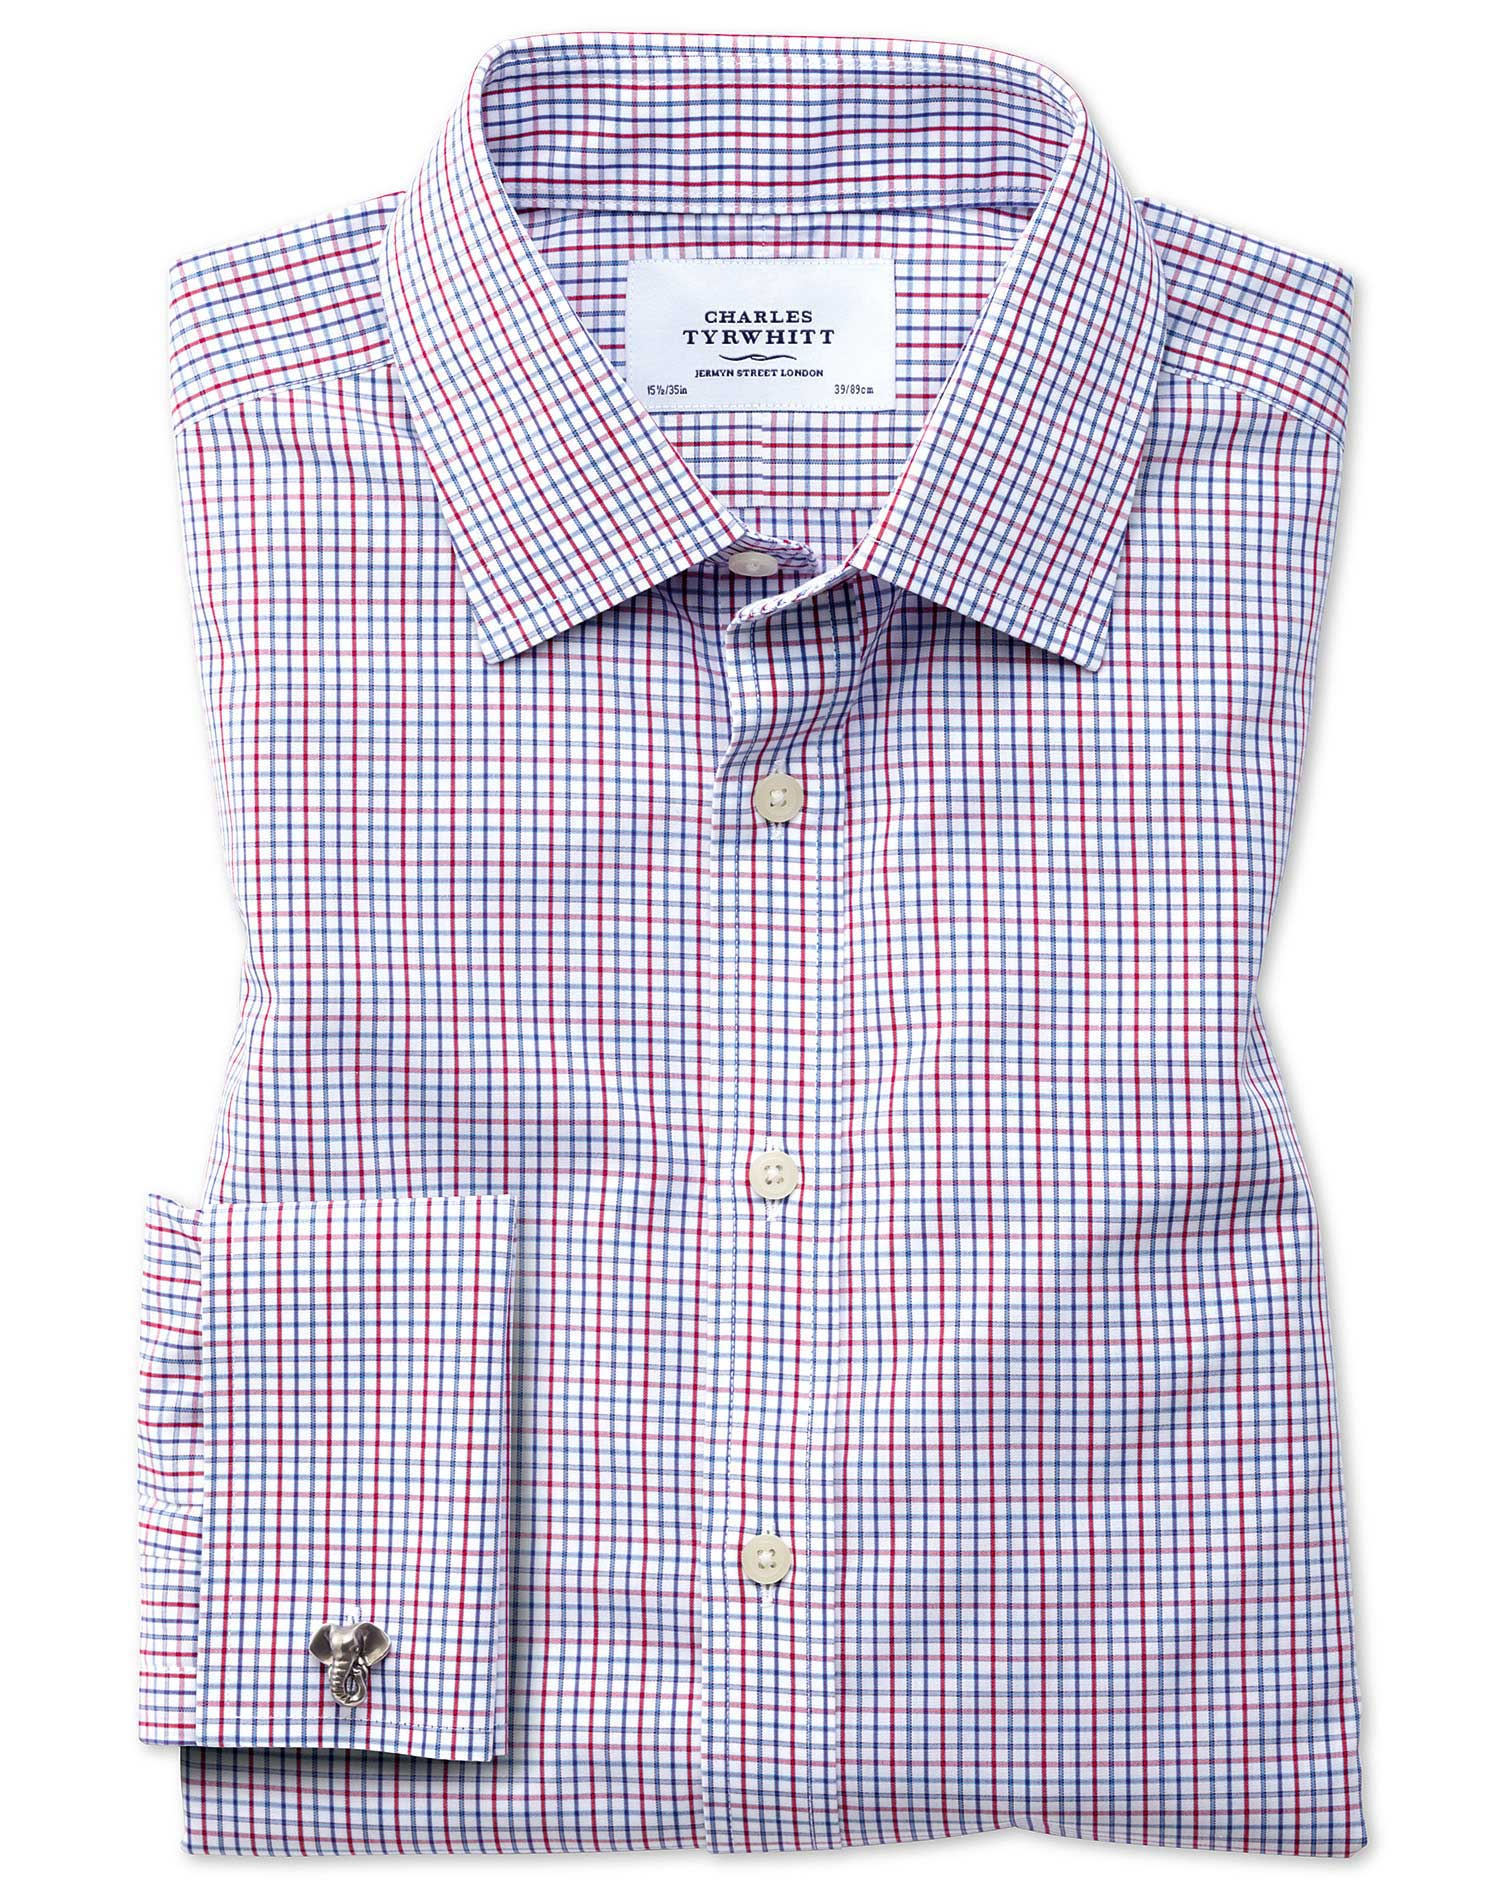 Slim Fit Non-Iron Multi Grid Check Cotton Formal Shirt Double Cuff Size 16.5/38 by Charles Tyrwhitt